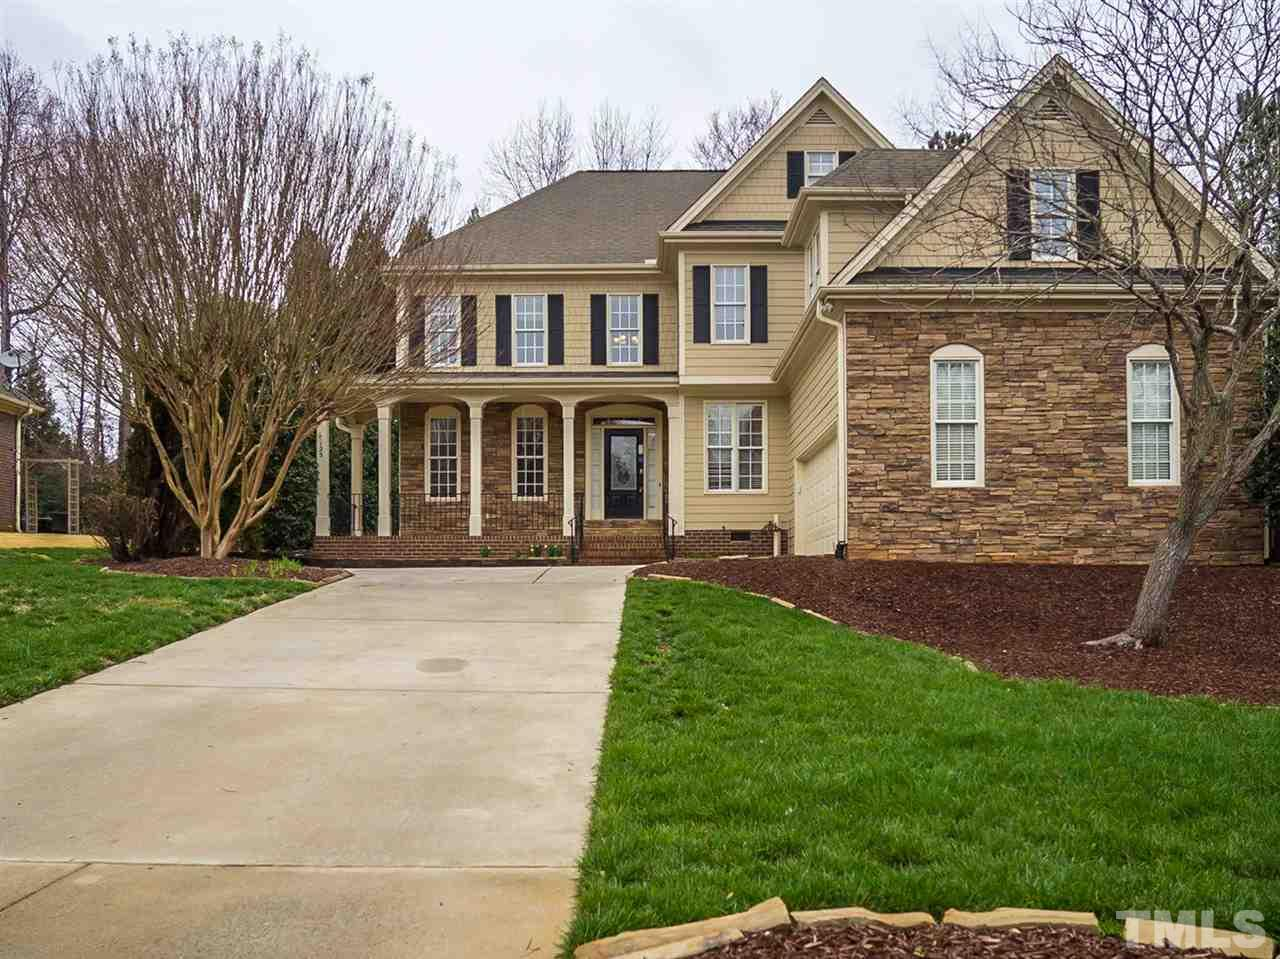 Built in 2003, this Holly Springs two-story cul-de-sac home offers a loft, hardwood flooring, a fireplace, and a two-car garage. This home is part of the Wescott Community Association, Inc.